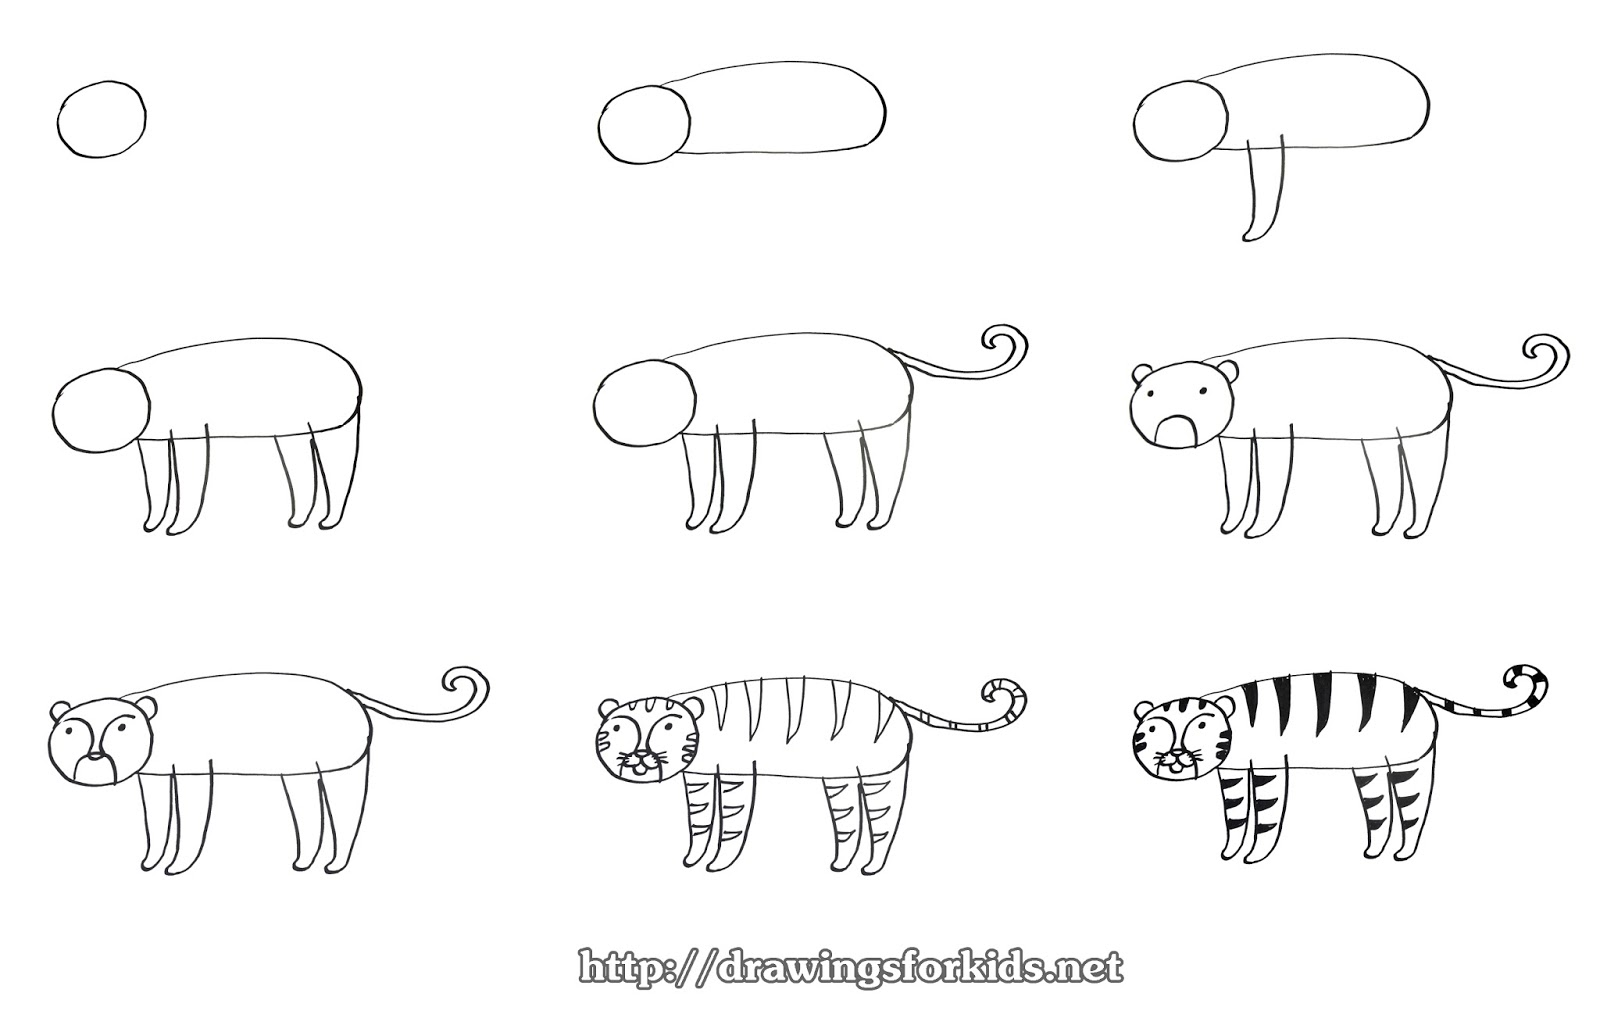 How to draw a Tiger for kids - drawingsforkids.net